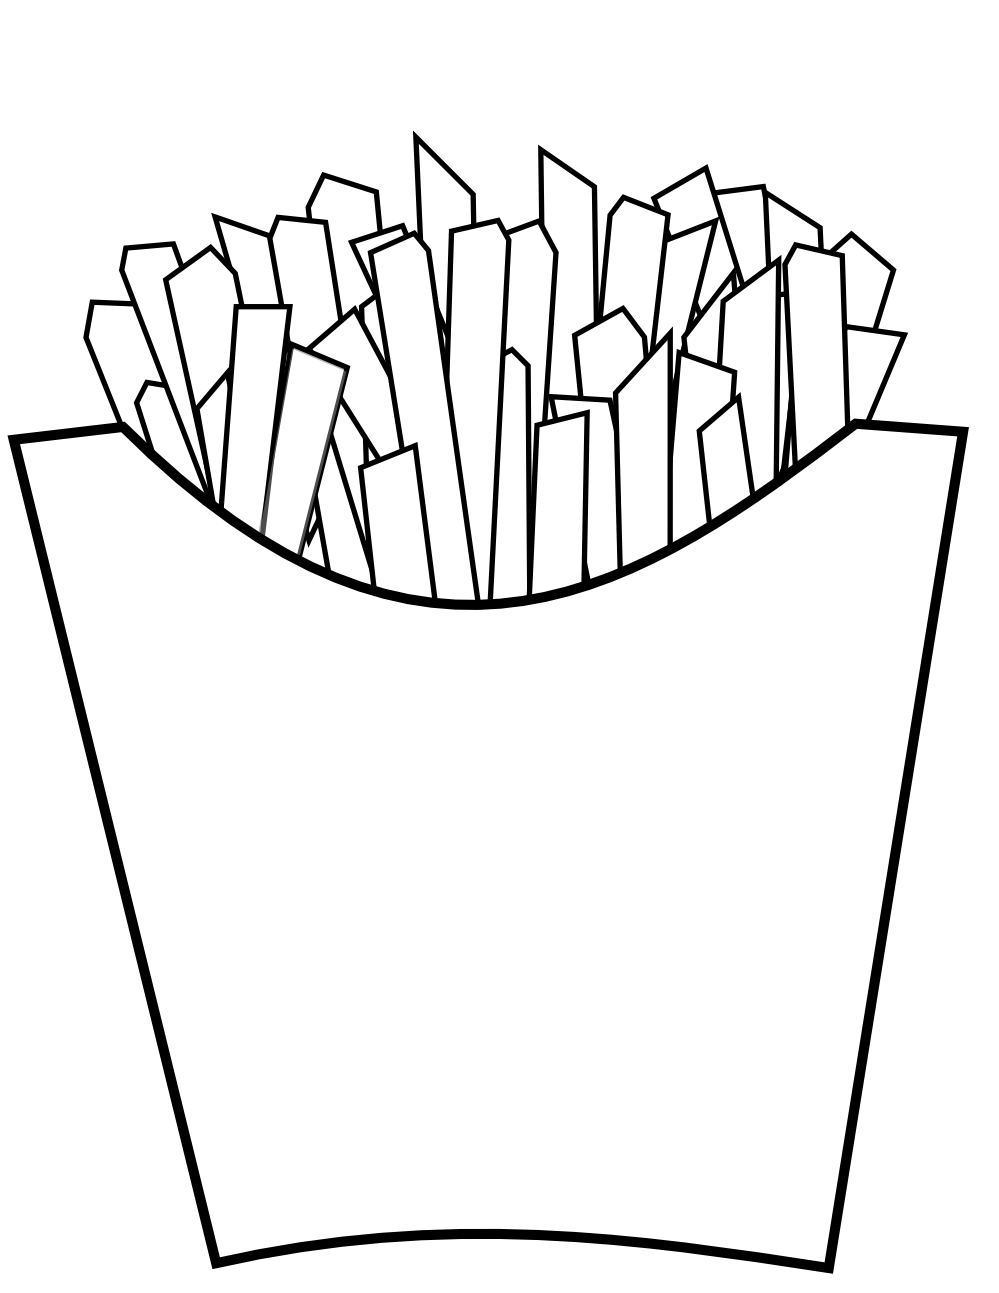 french fries Coloring Book Colouring Sheet Coloring Book Colouring ...